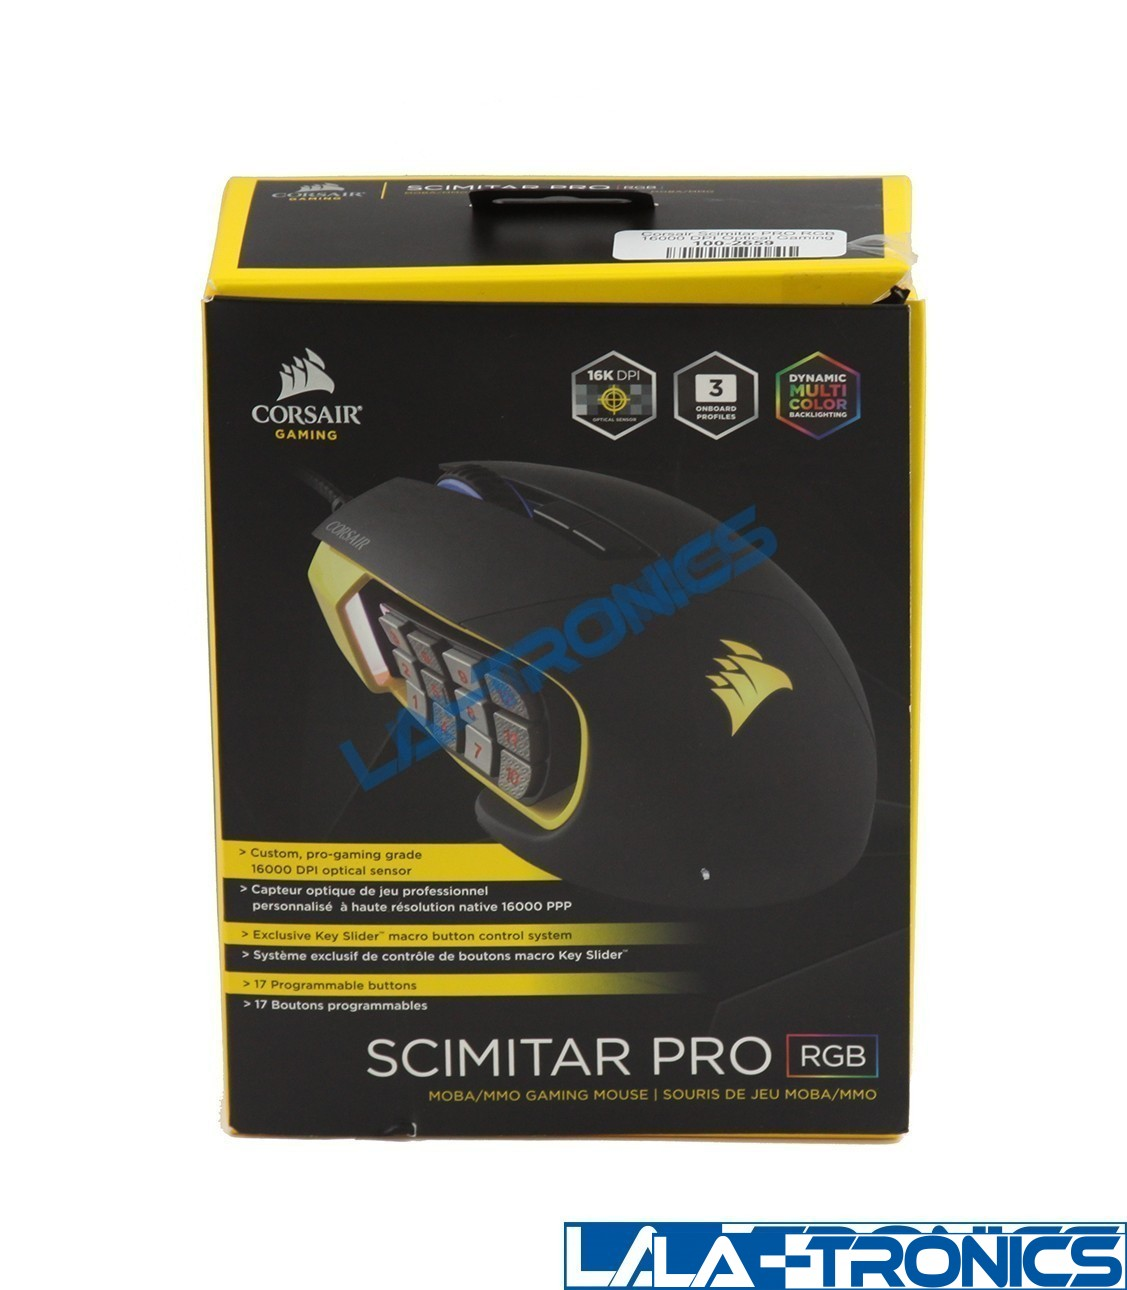 Corsair SCIMITAR PRO CH-9304011-NA Wired USB Gaming Mouse